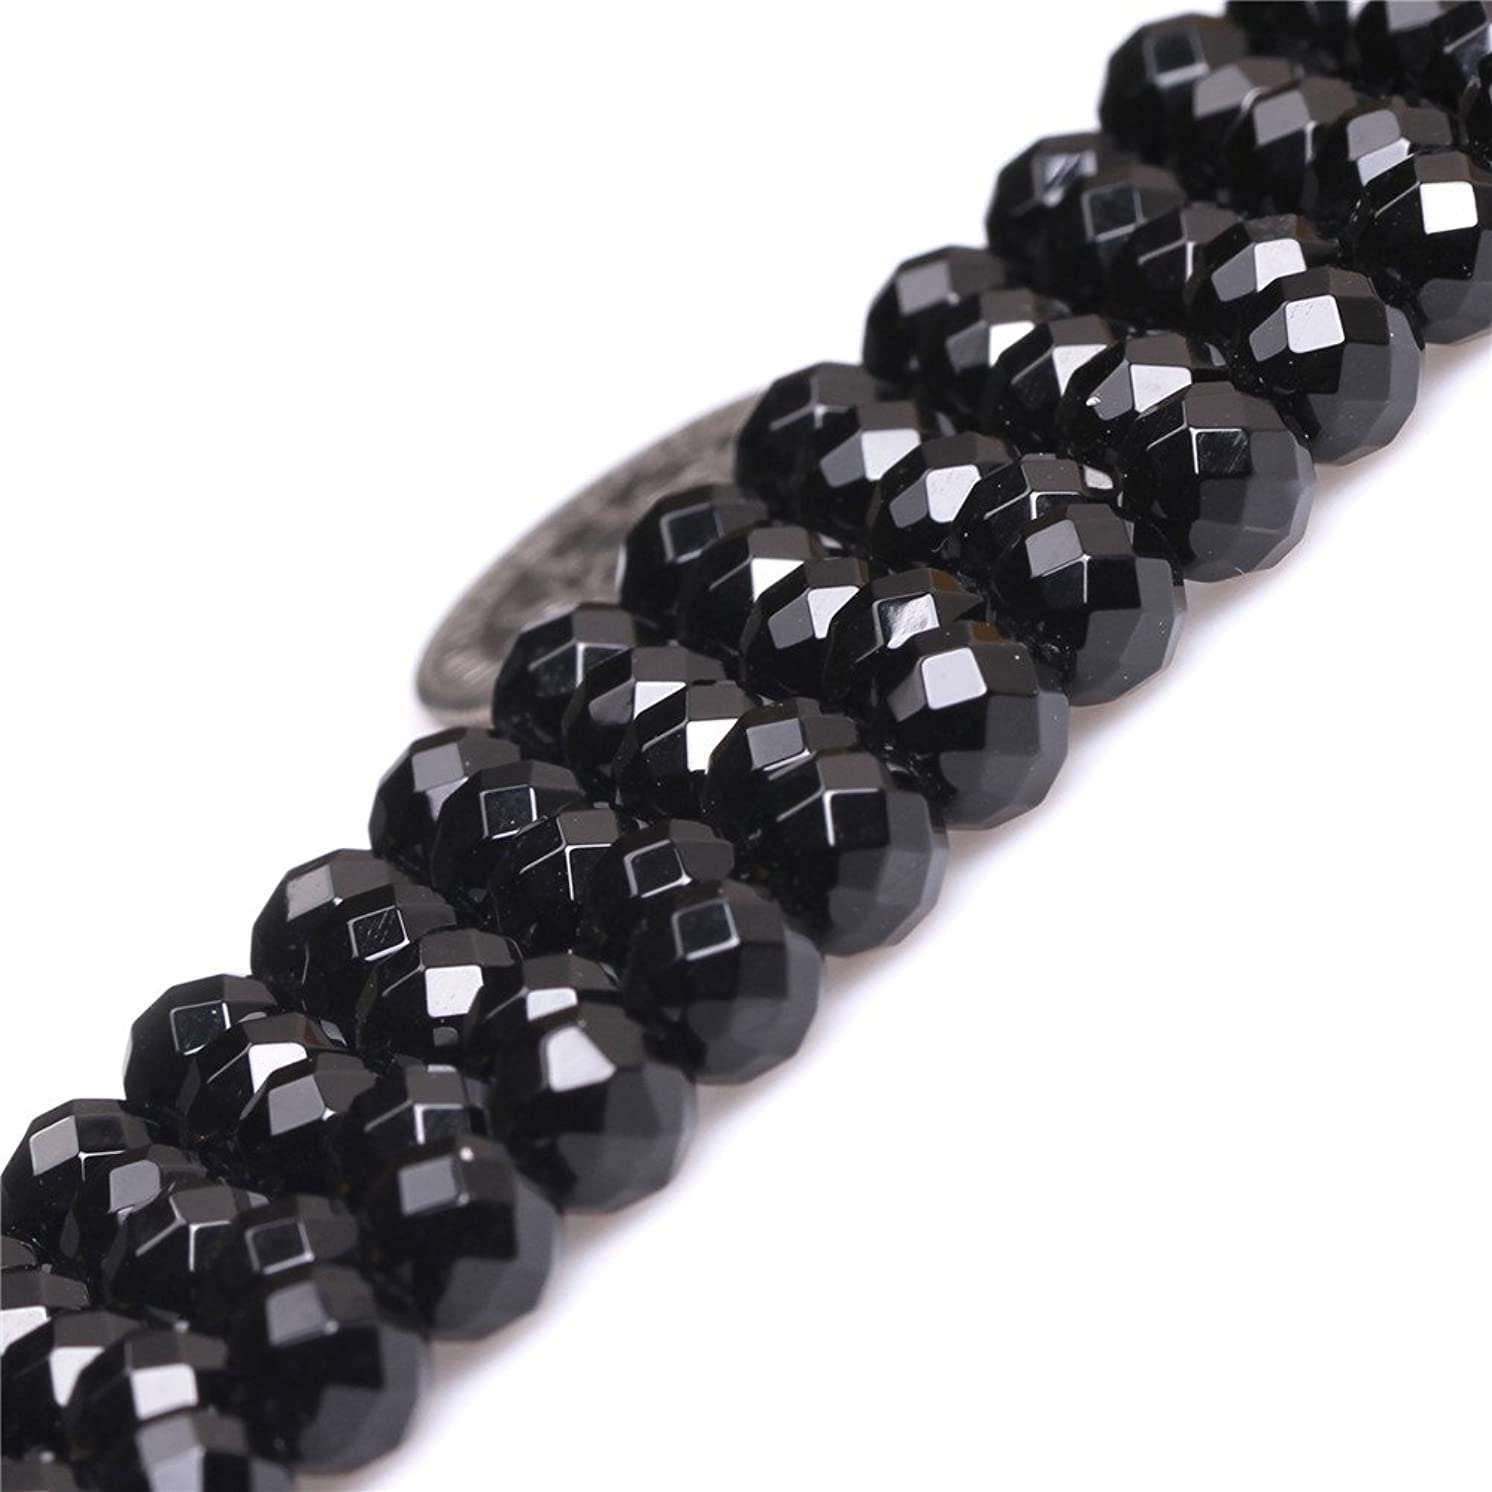 JOE FOREMAN 6mm Black Agate Semi Precious Gemstone Round Faceted Loose Beads for Jewelry Making AAA Grade DIY Handmade Craft Supplies 15